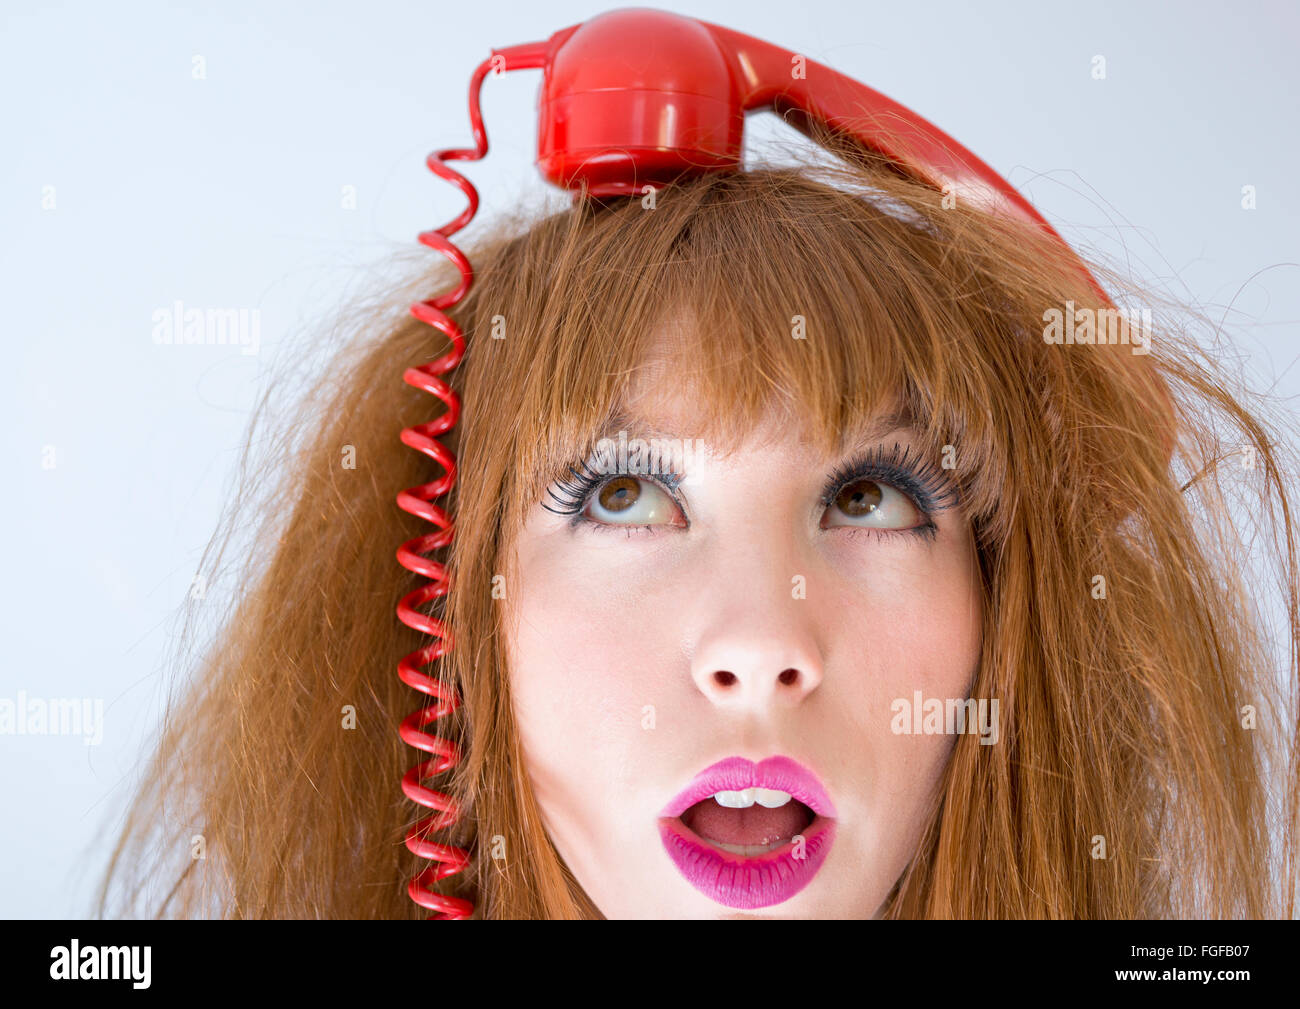 Woman with a red retro telephone handset balancing on top of her head Stock Photo